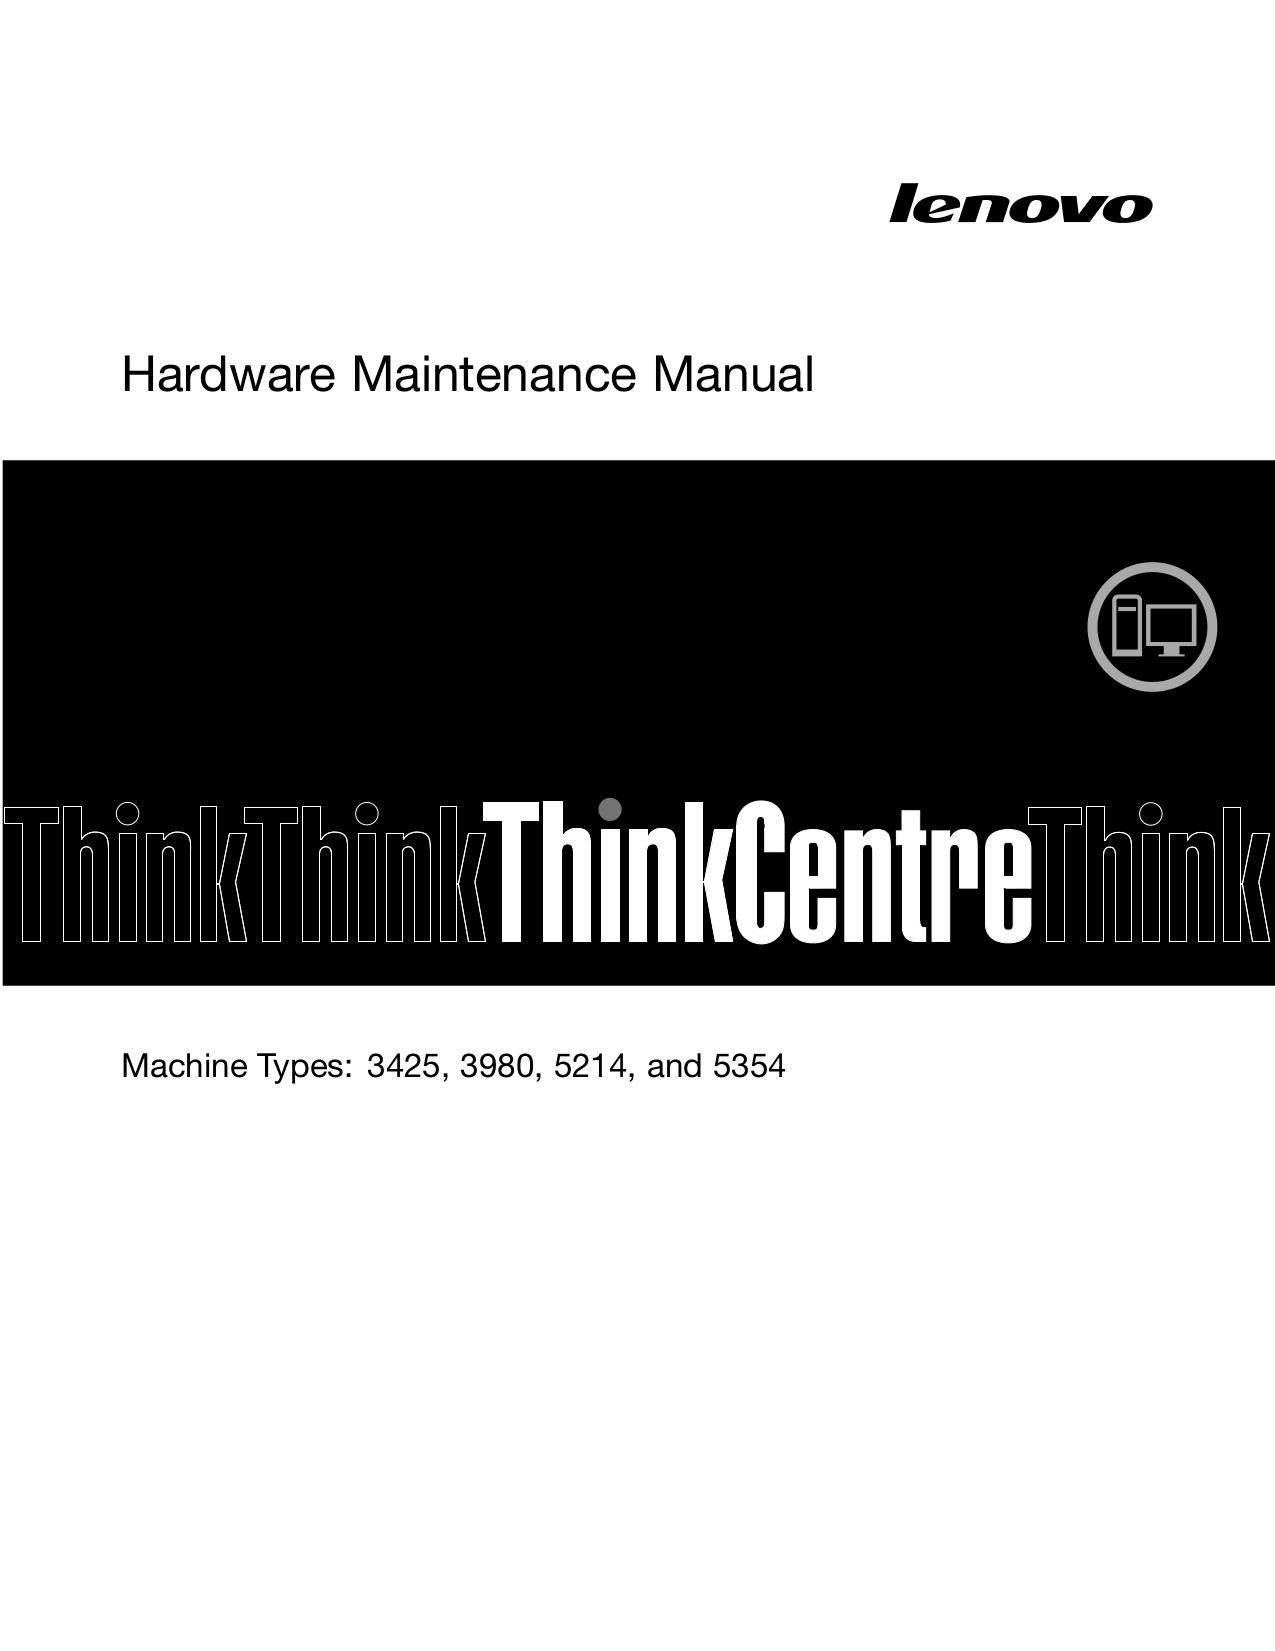 pdf for Lenovo Desktop ThinkCentre A58e 3980 manual